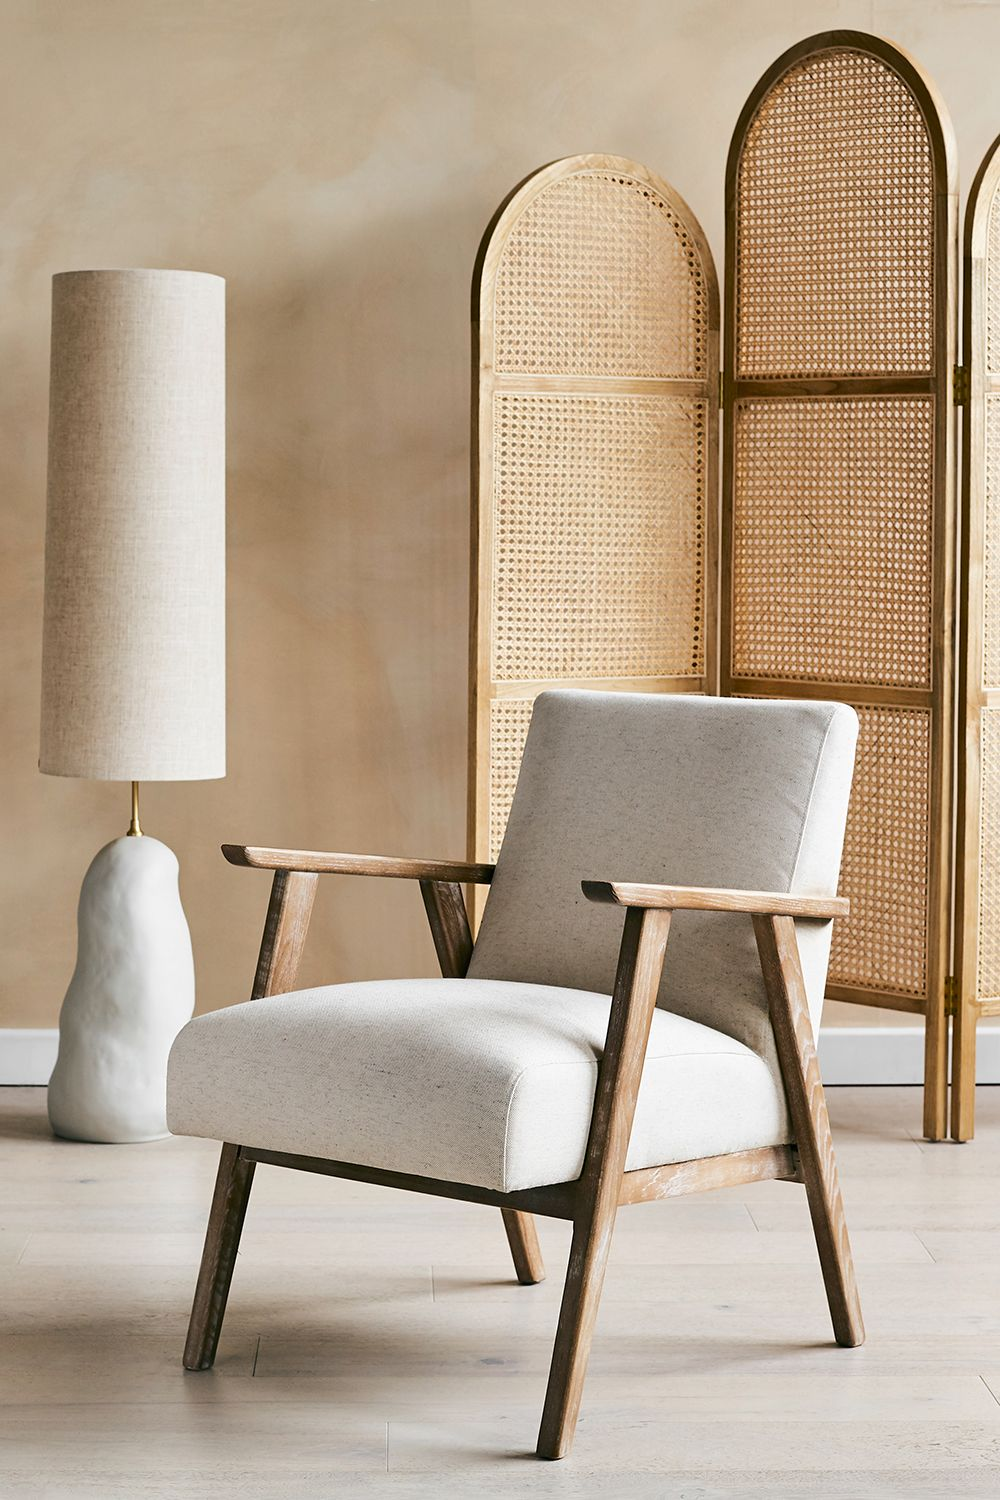 The Interiors Trends You Need to Know for 2020